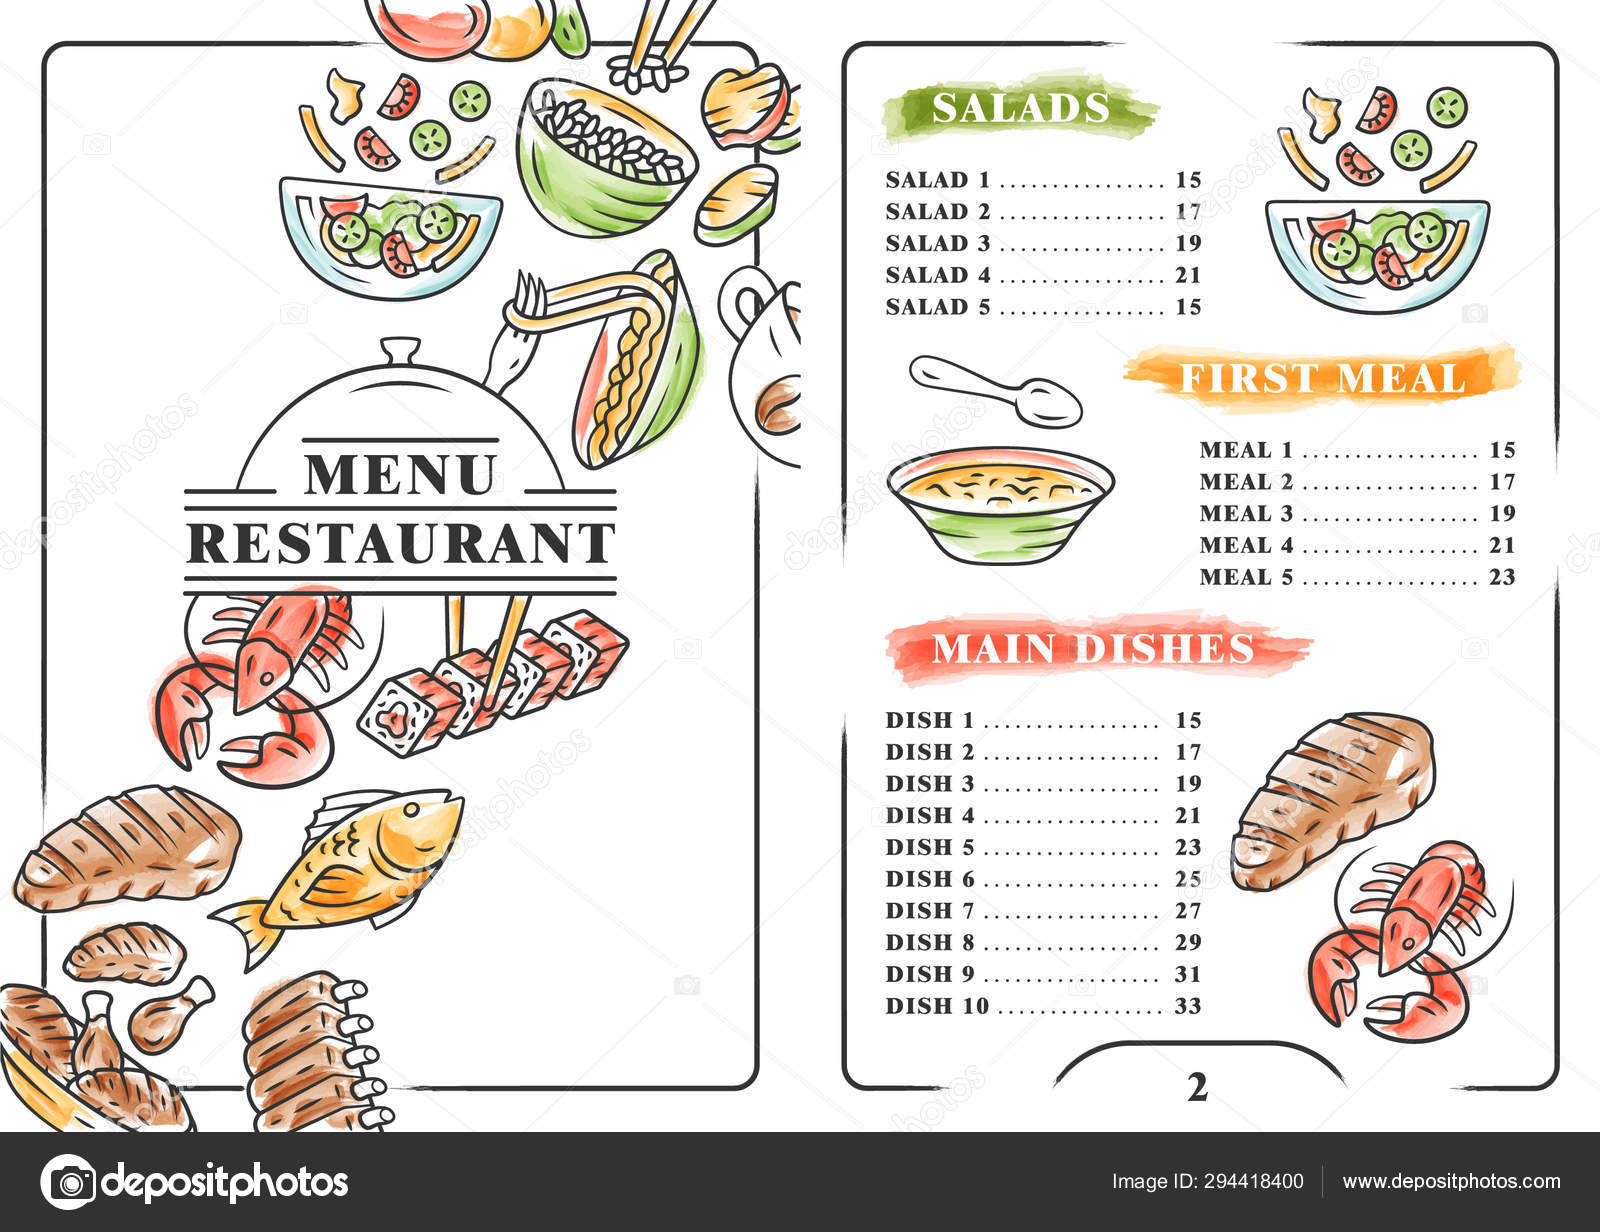 Restaurant Menu Color Template Salads First Meal Main Dishes Print Design With Linear Icons Concept Vector Illustrations Cafe Banner Flyer Brochure Page With Food Prices Layout Stock Vector C Bsd 294418400